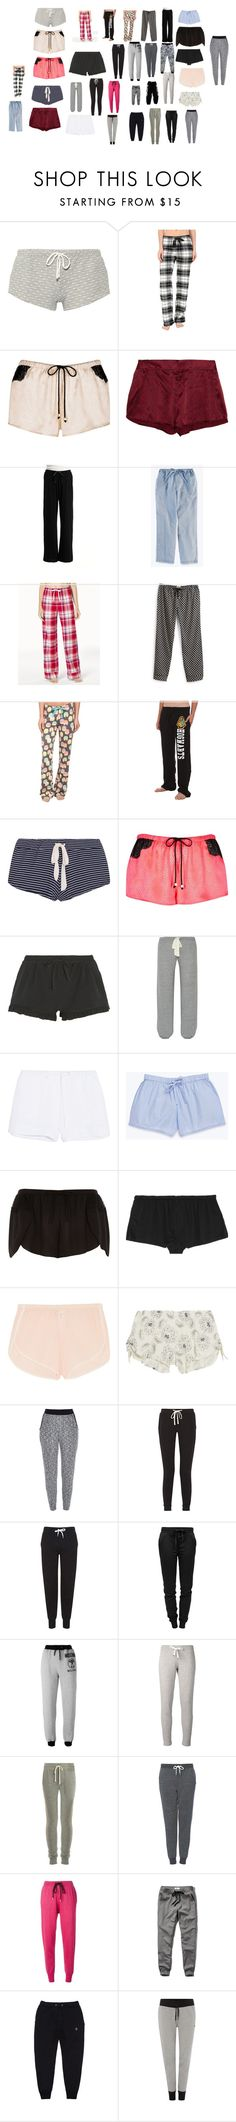 """pajama bottoms"" by hopecutyorange ❤ liked on Polyvore featuring Eberjey, P.J. Salvage, River Island, STELLA McCARTNEY, Hue, Soma, Vera Bradley, DKNY, Skin and Kiki de Montparnasse"